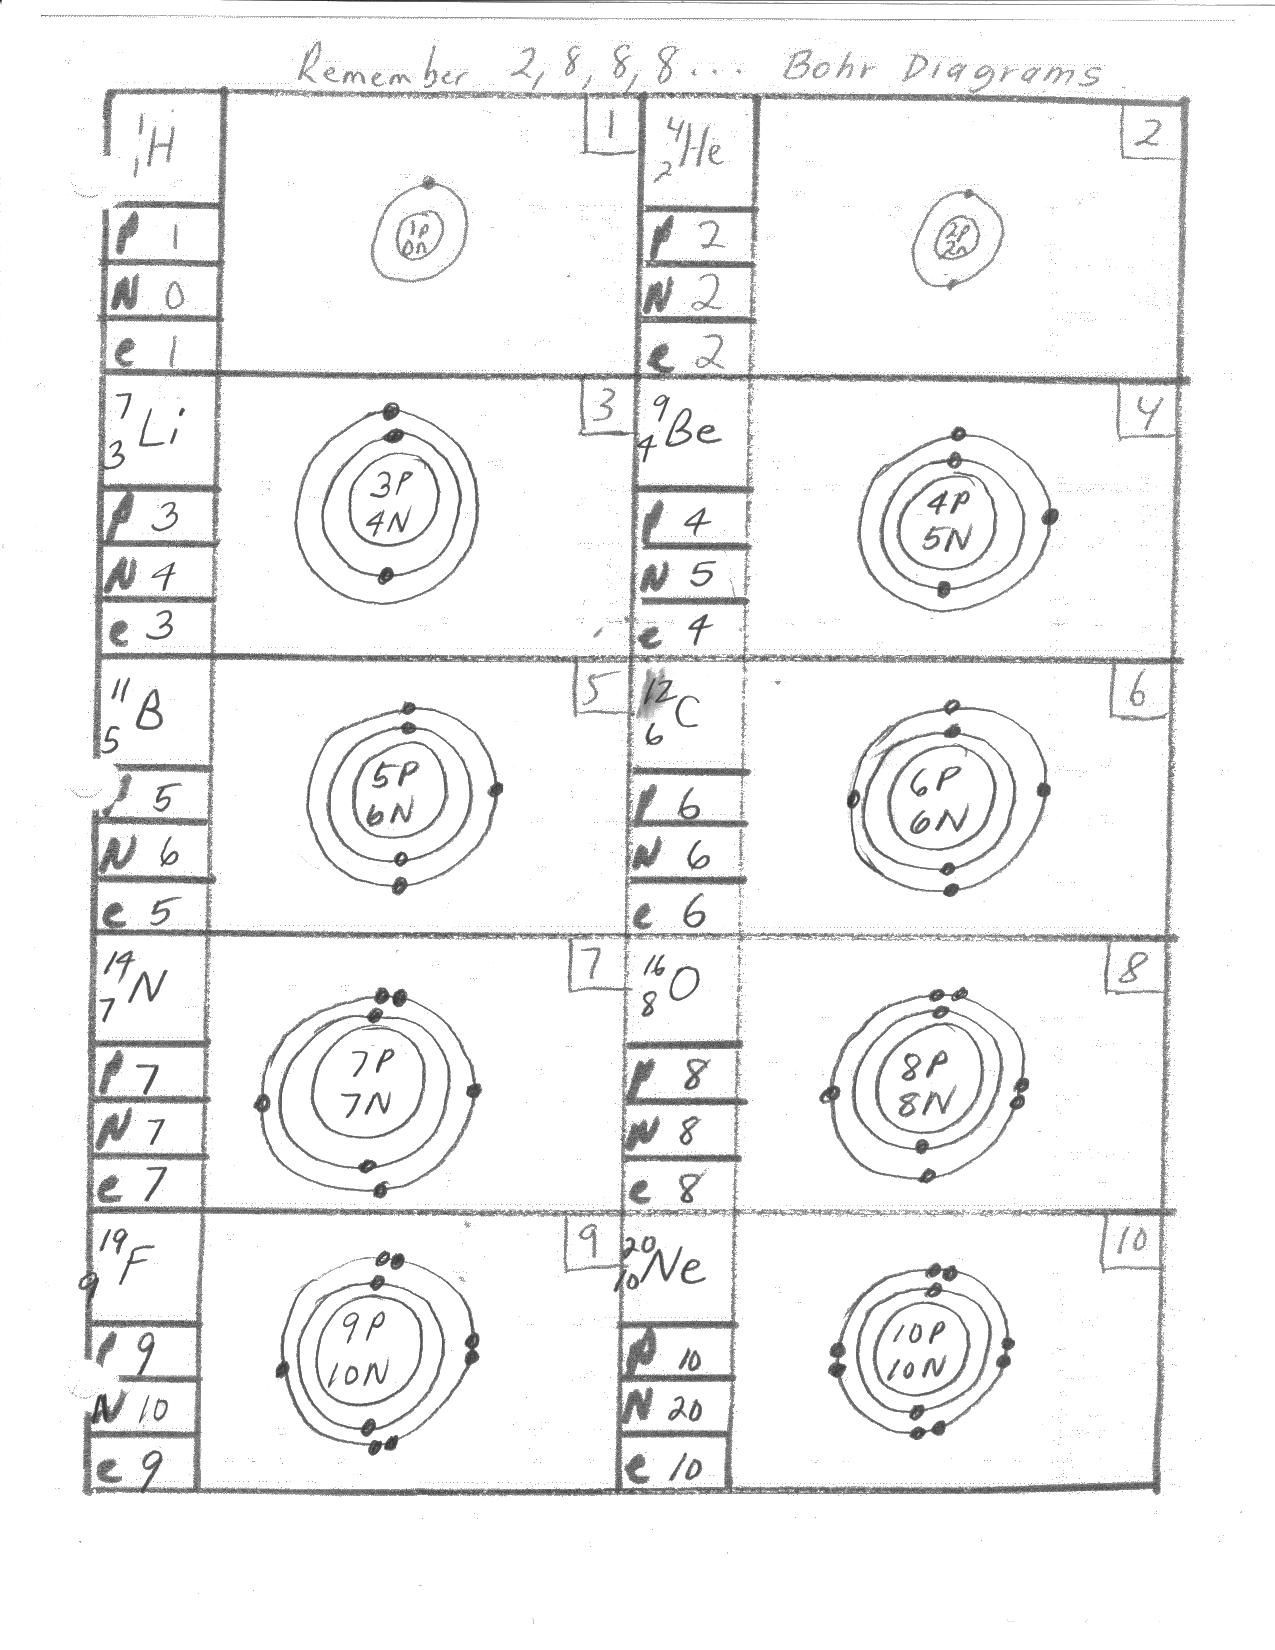 Bohr Model Worksheet High School Worksheets Bohr Model Worksheet Answers Pureluckrestaurant